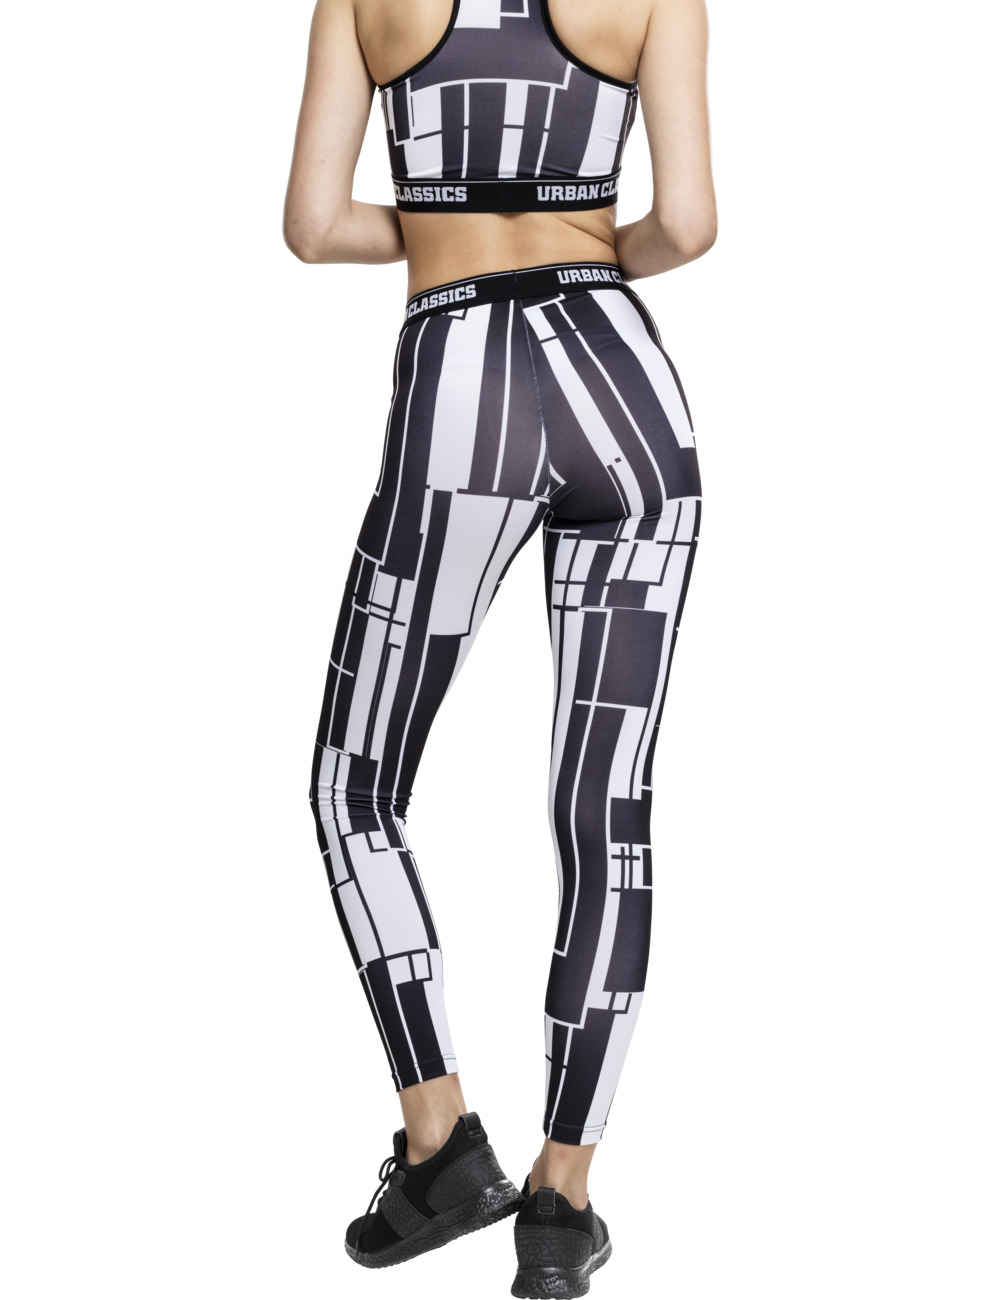 urban-classics-ladies-graphic-sports-leggings